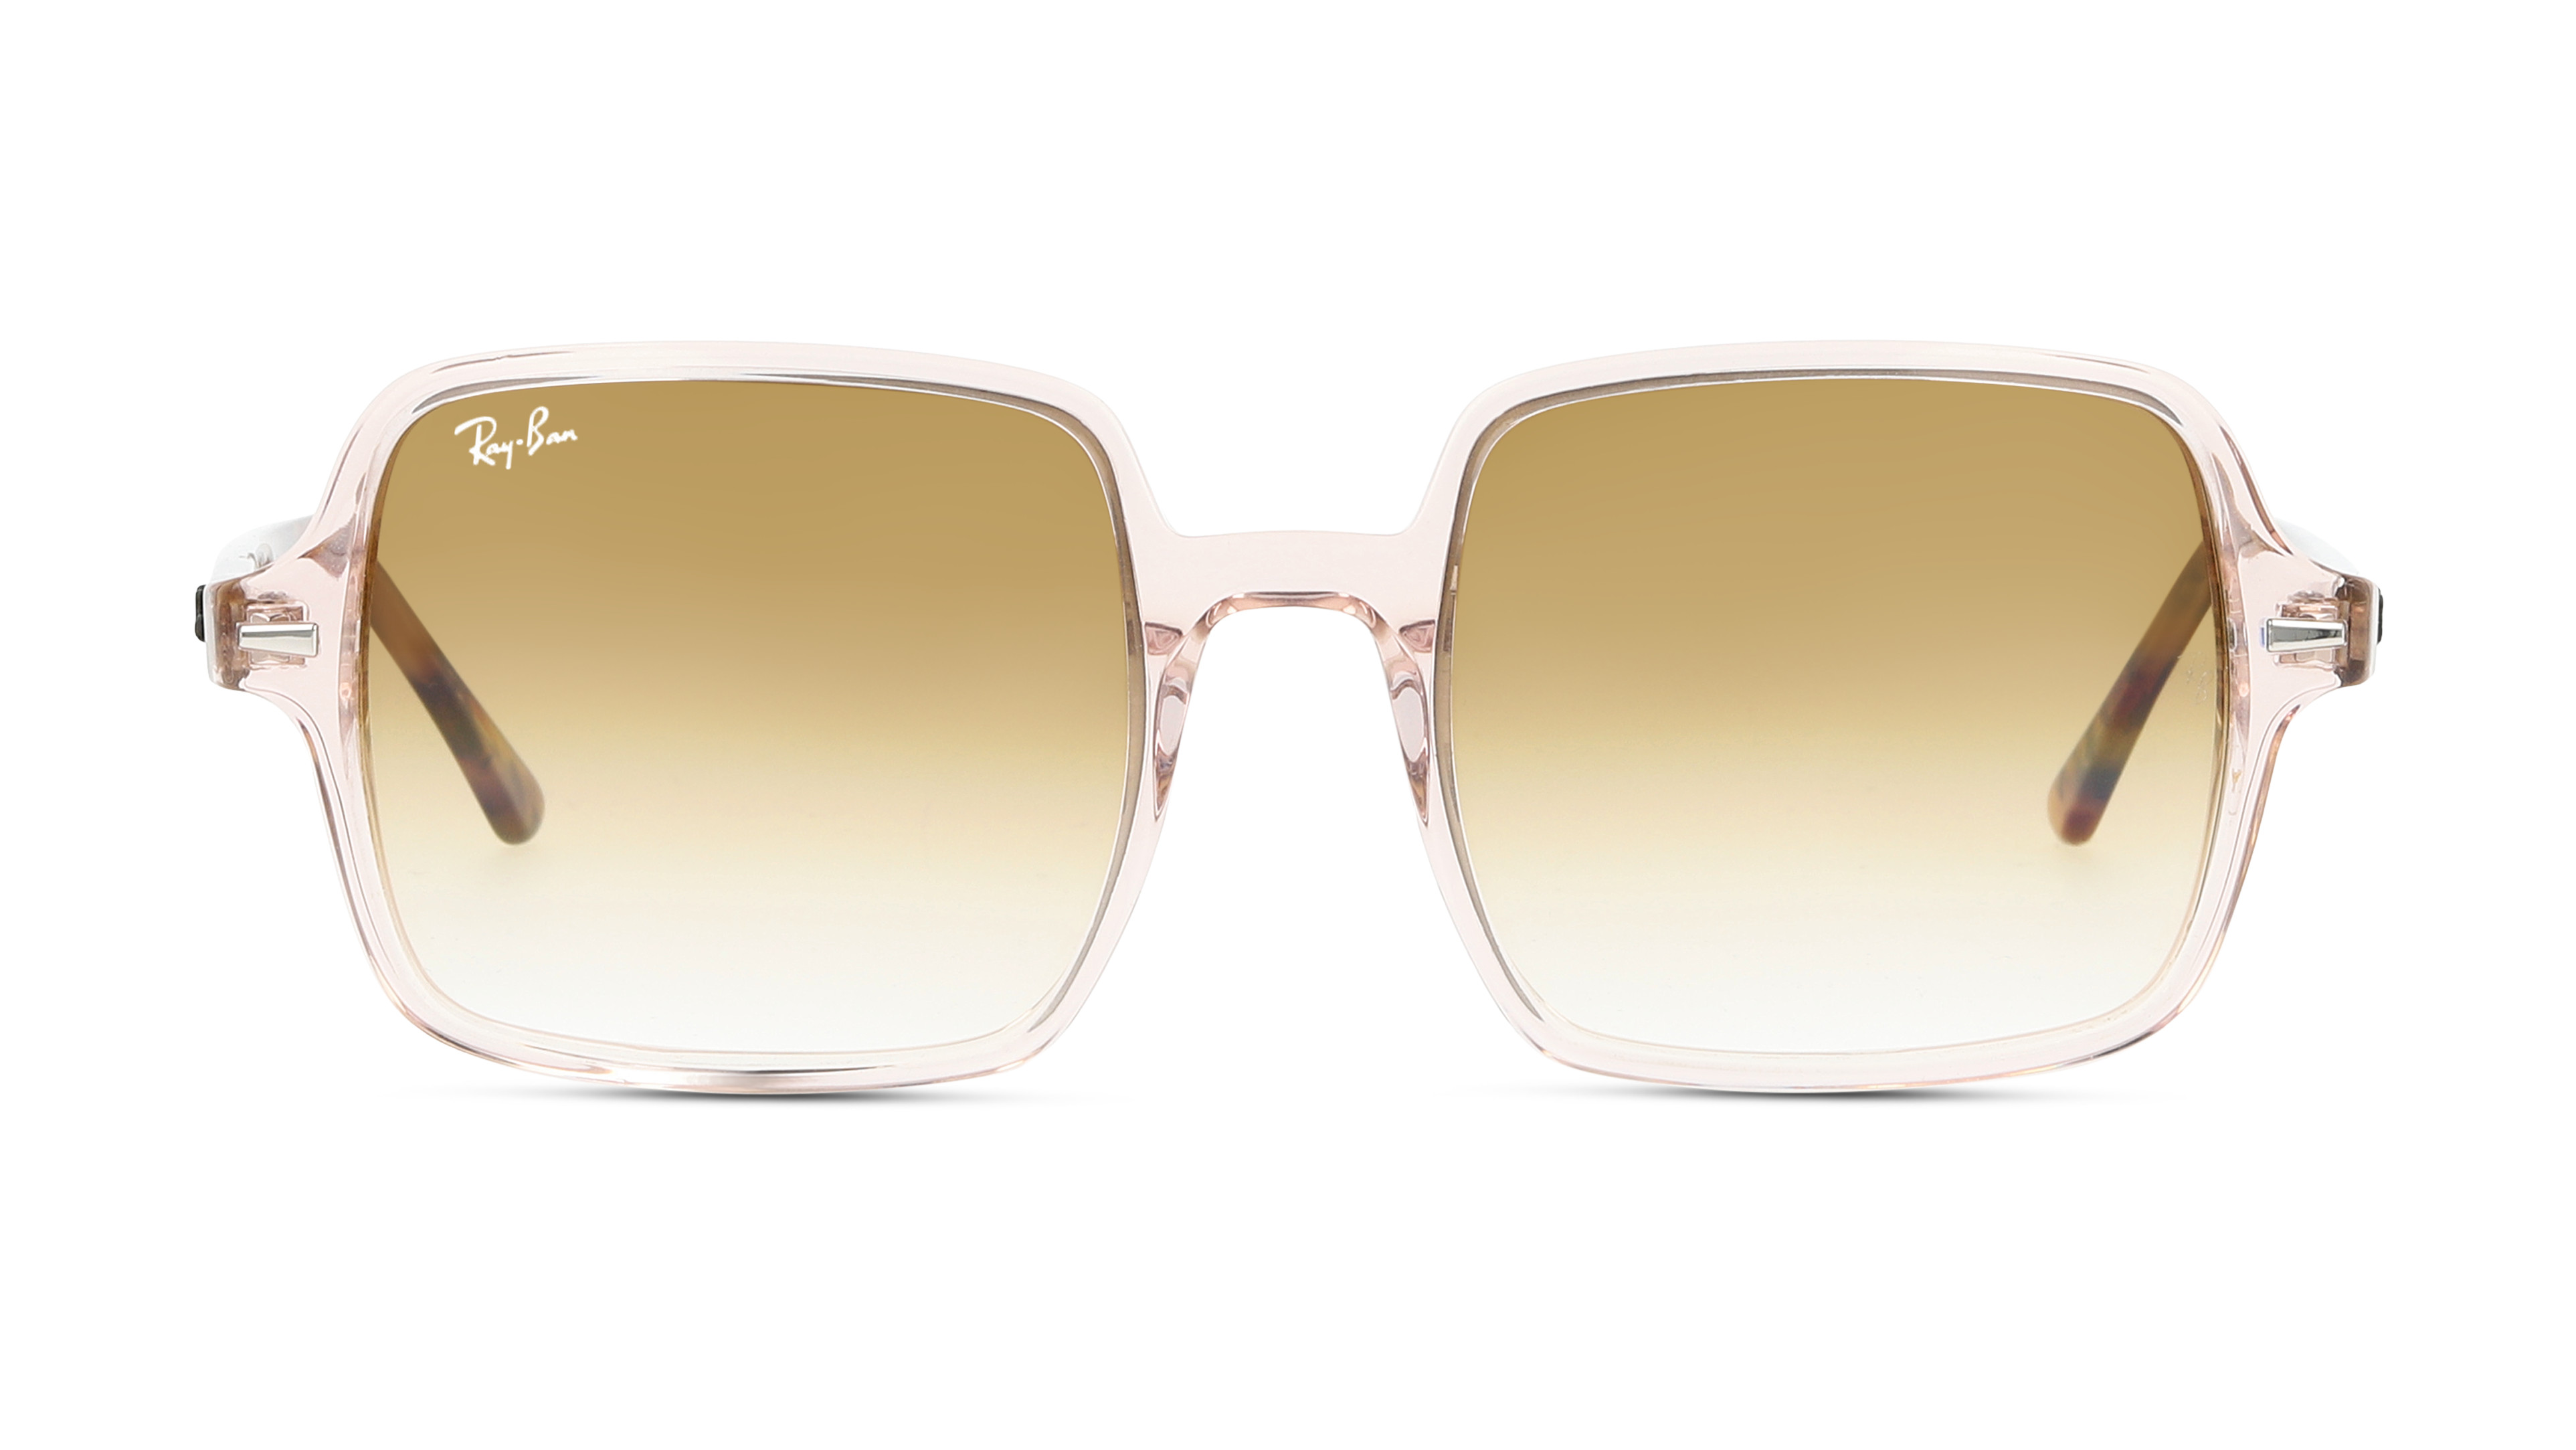 8056597121903-front-Ray-Ban-Sonnenbrille-0rb1973-square-2-transparent-light-brown